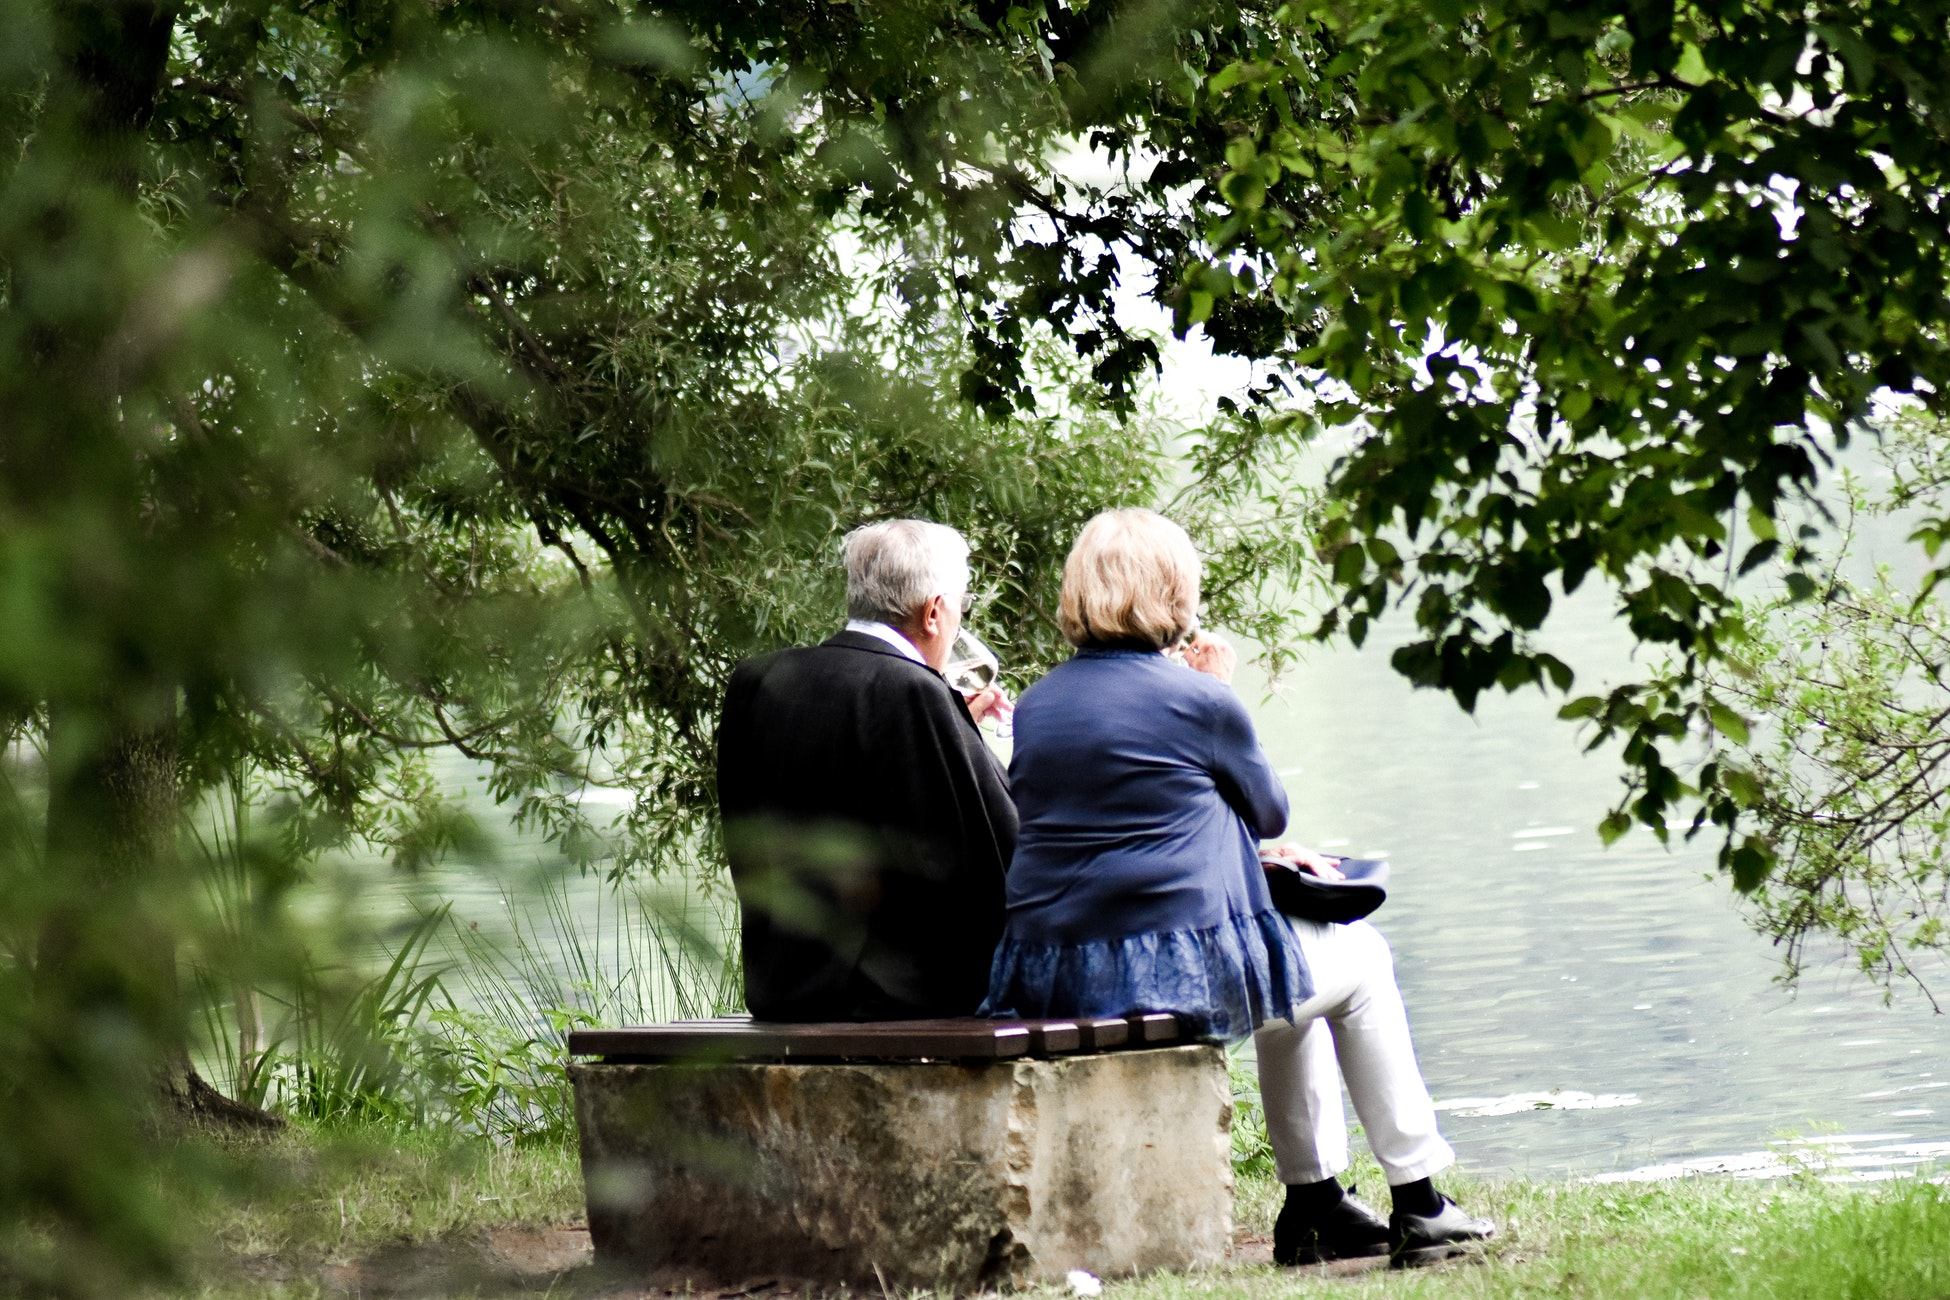 An elderly woman and her husband enjoying wine outdoors before they move to a memory care facility.